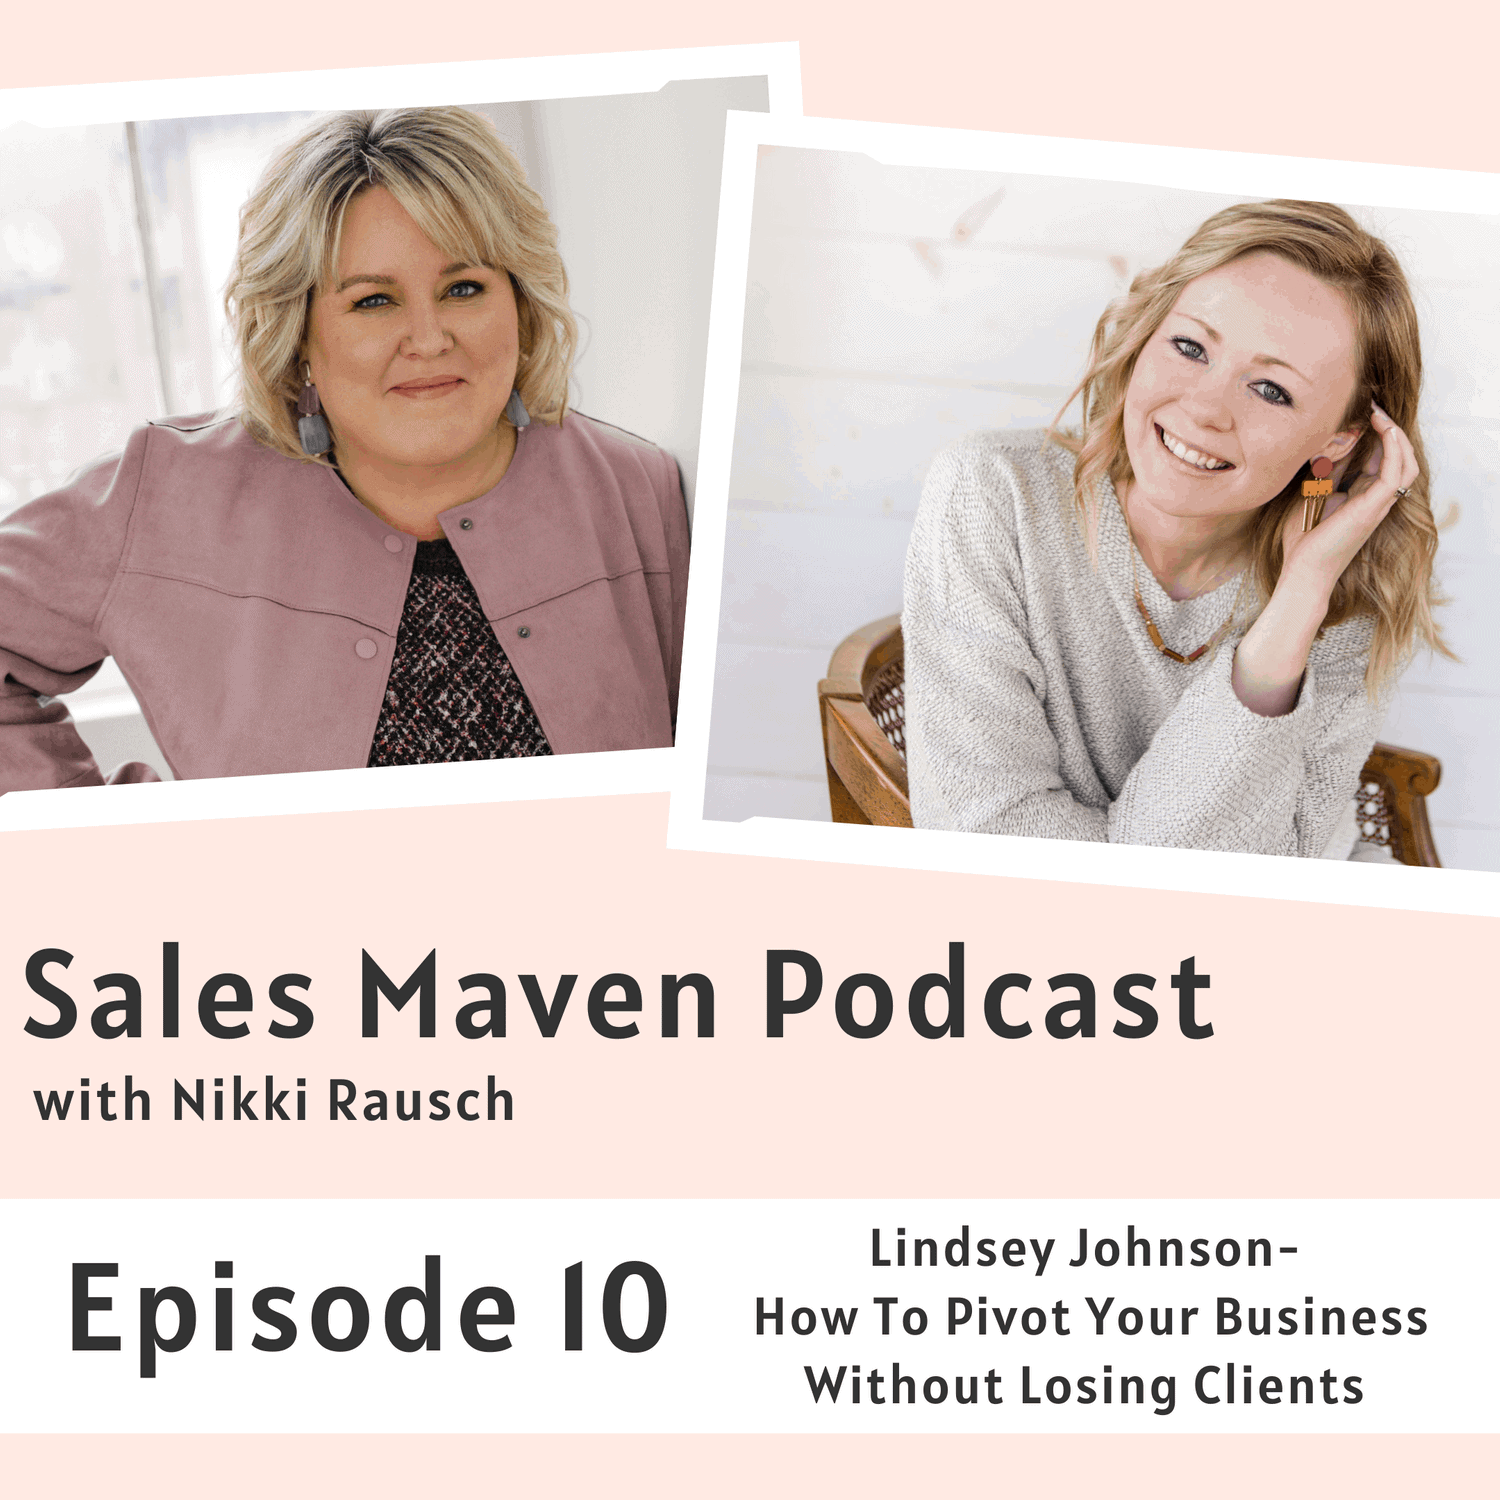 How to pivot your business without losing clients with Lindsey Johnson